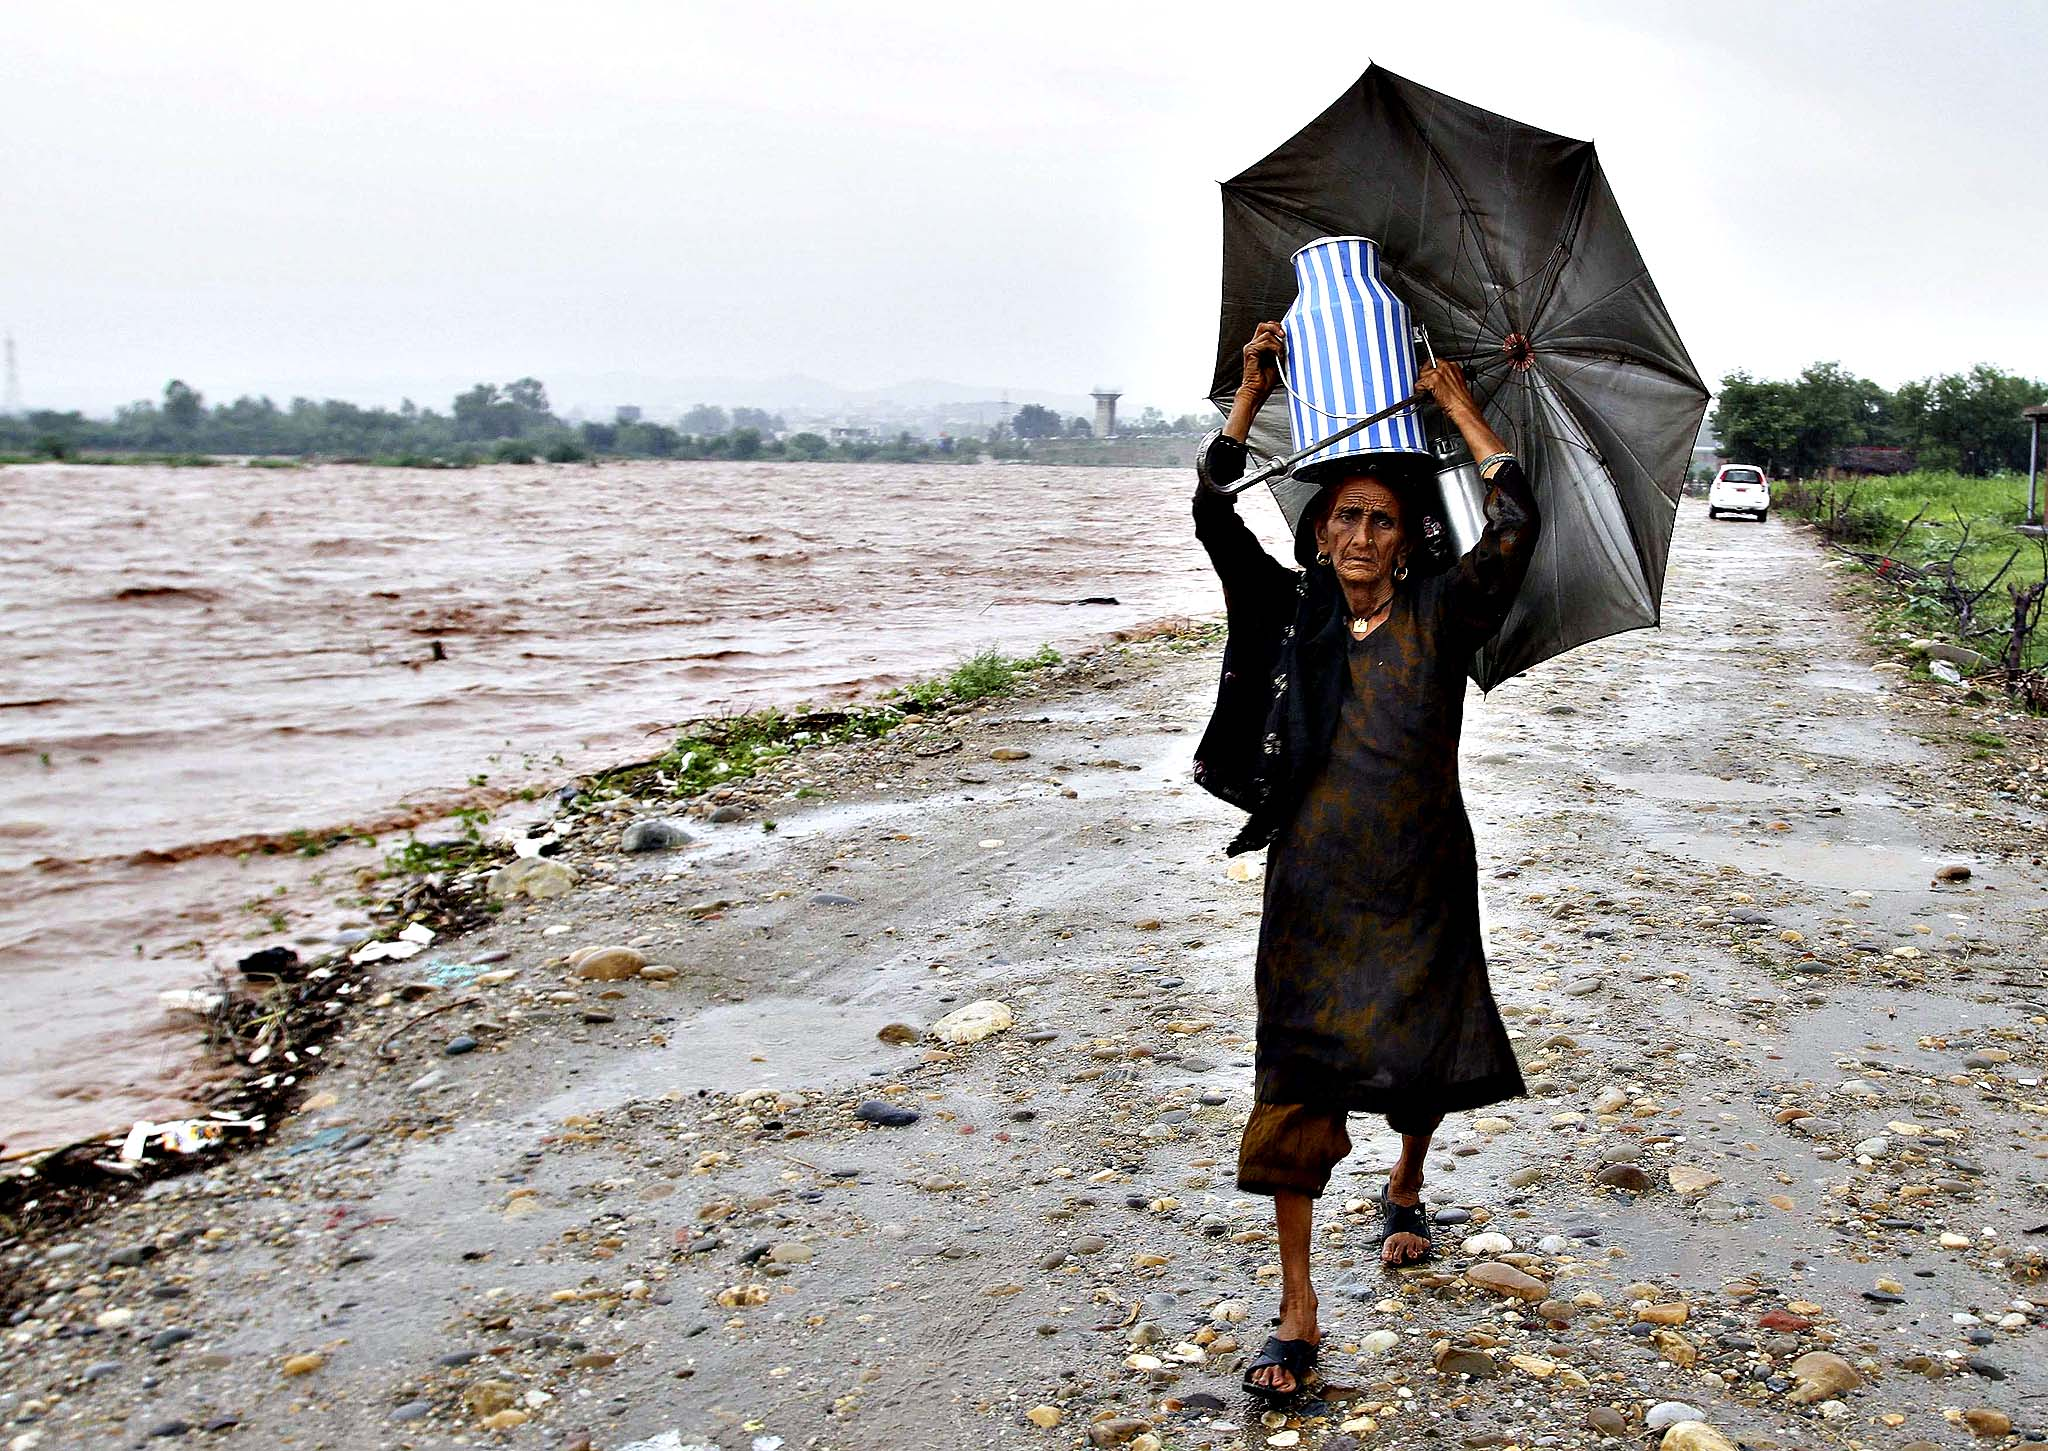 A nomadic woman carries a milk container while shifting her belongings to a safer place from the flooded banks of river Tawi after heavy rains in Jammu September 5, 2014. Sixty-five people were killed after heavy rains caused flash floods in Indian-administered Kashmir, including a wedding party on a bus that was swept away, officials said on Thursday. Authorities declared a disaster alert in the northern region after two days of heavy rain hit villages across the Kashmir valley, causing the worst flooding in two decades.